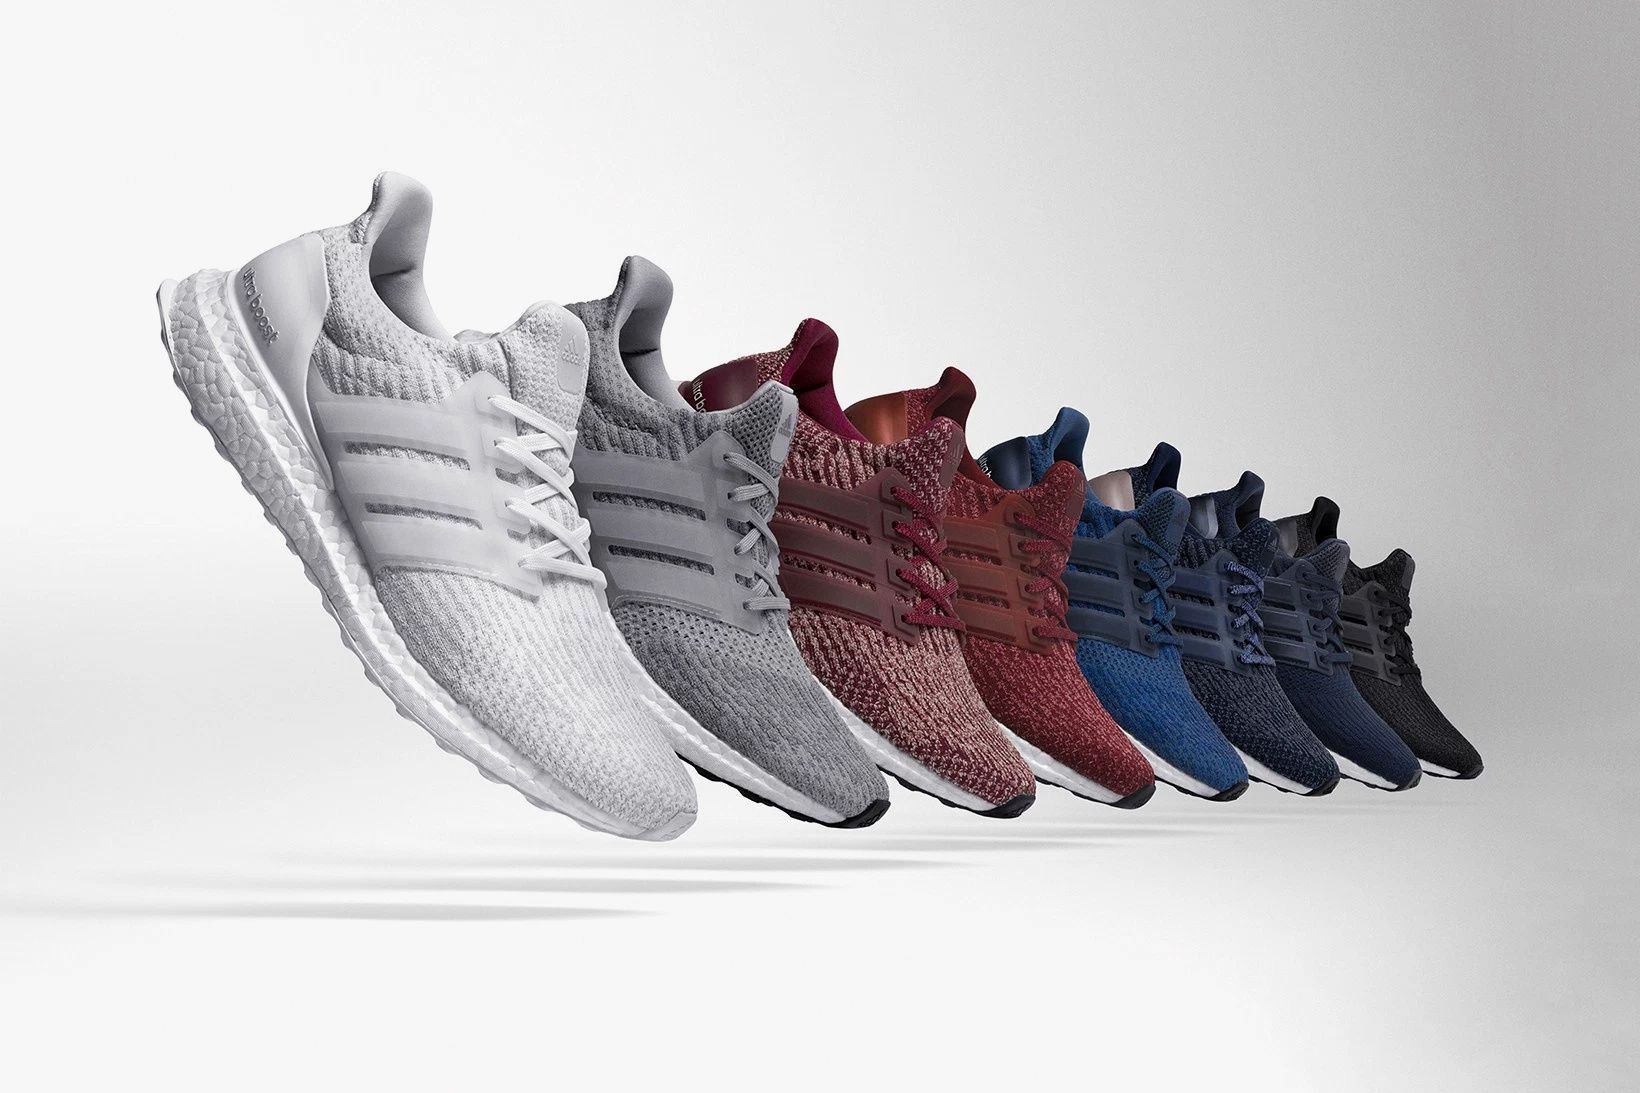 55d7ad9513a adidas Officially Introduces the UltraBOOST 3.0